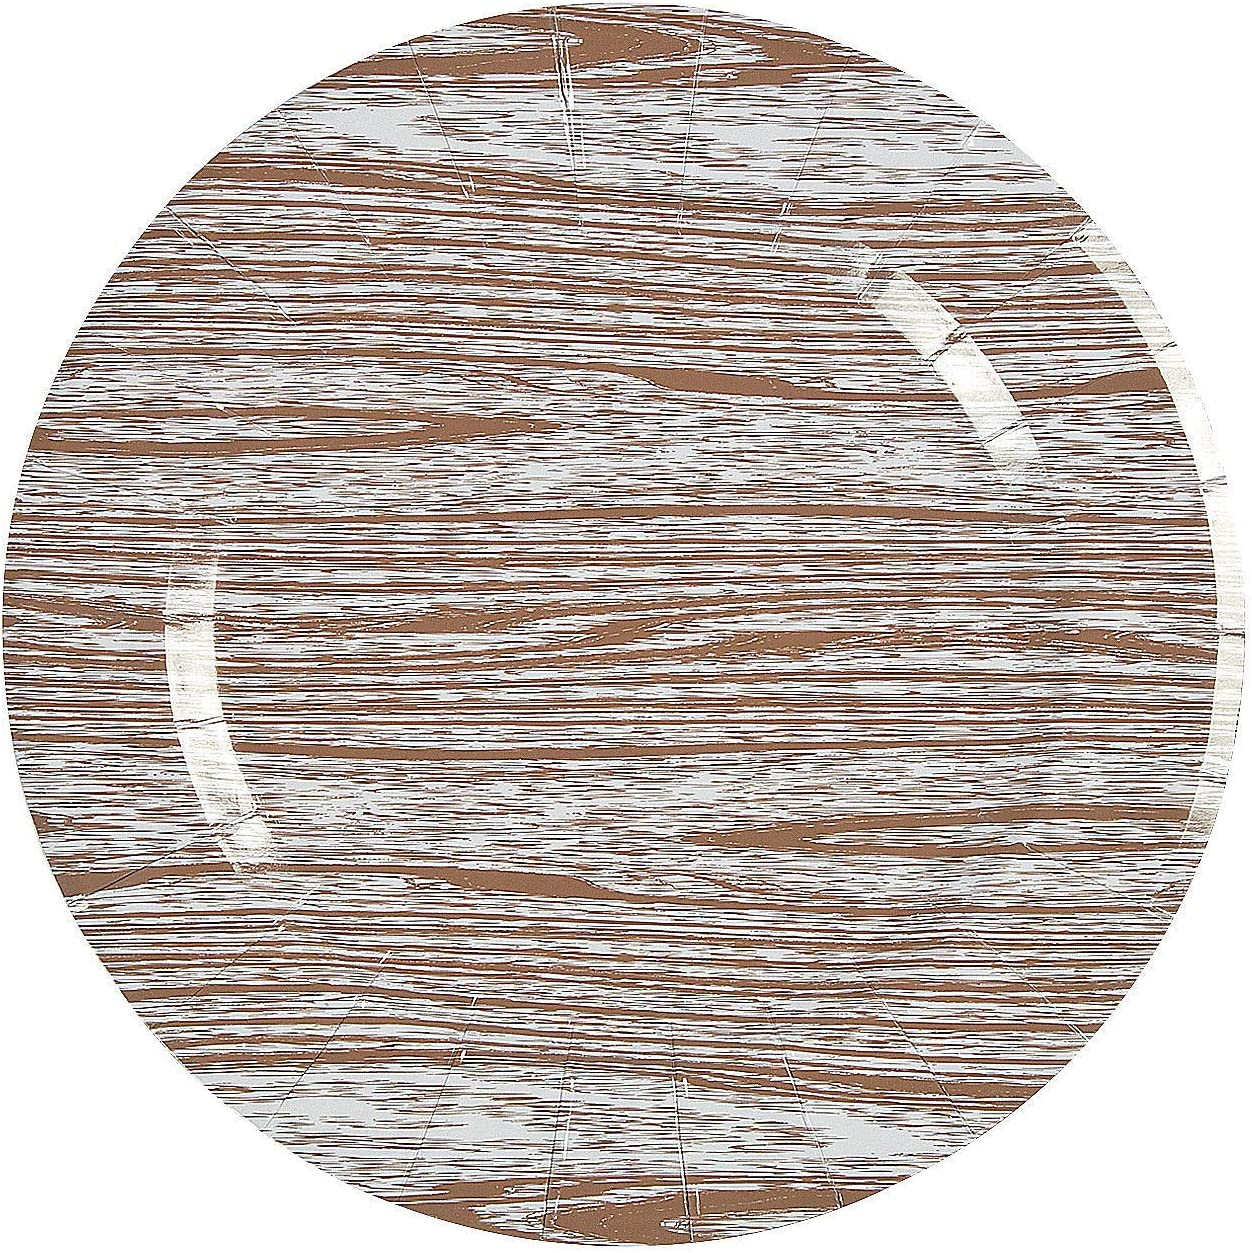 Fun Express - Max 86% OFF Faux Wood Paper Part 25pc for Wedding Max 65% OFF Chargers